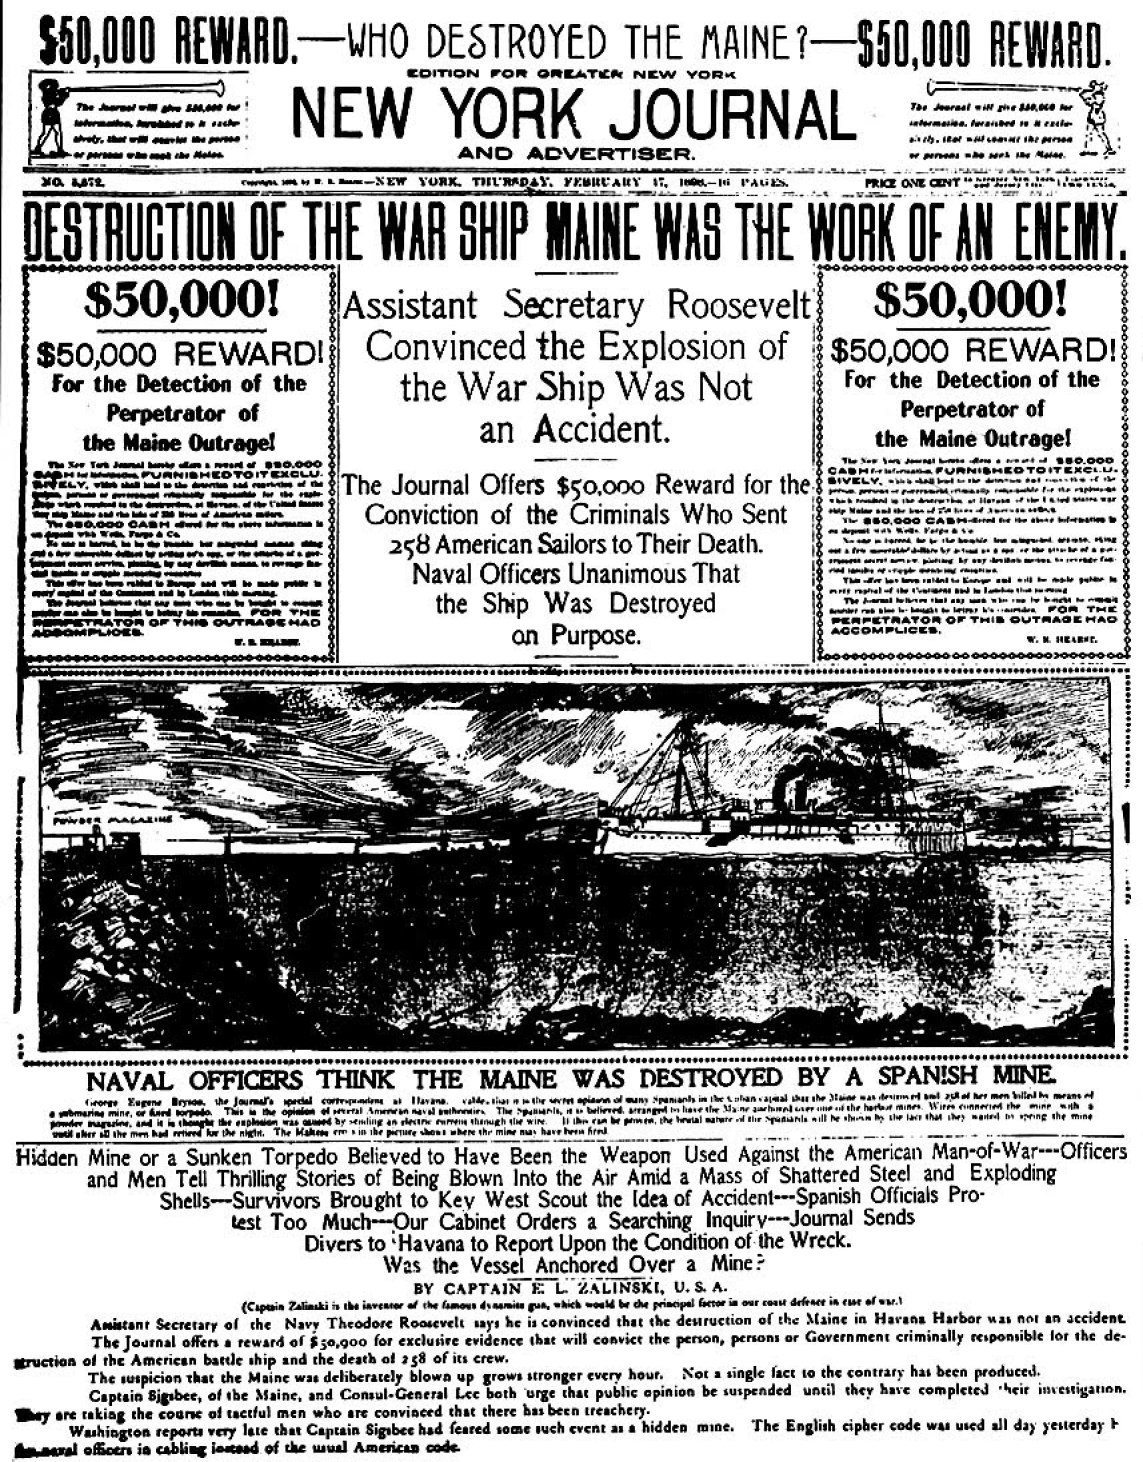 Pulitzer Prize Began With Fake News, Gave Us WWI